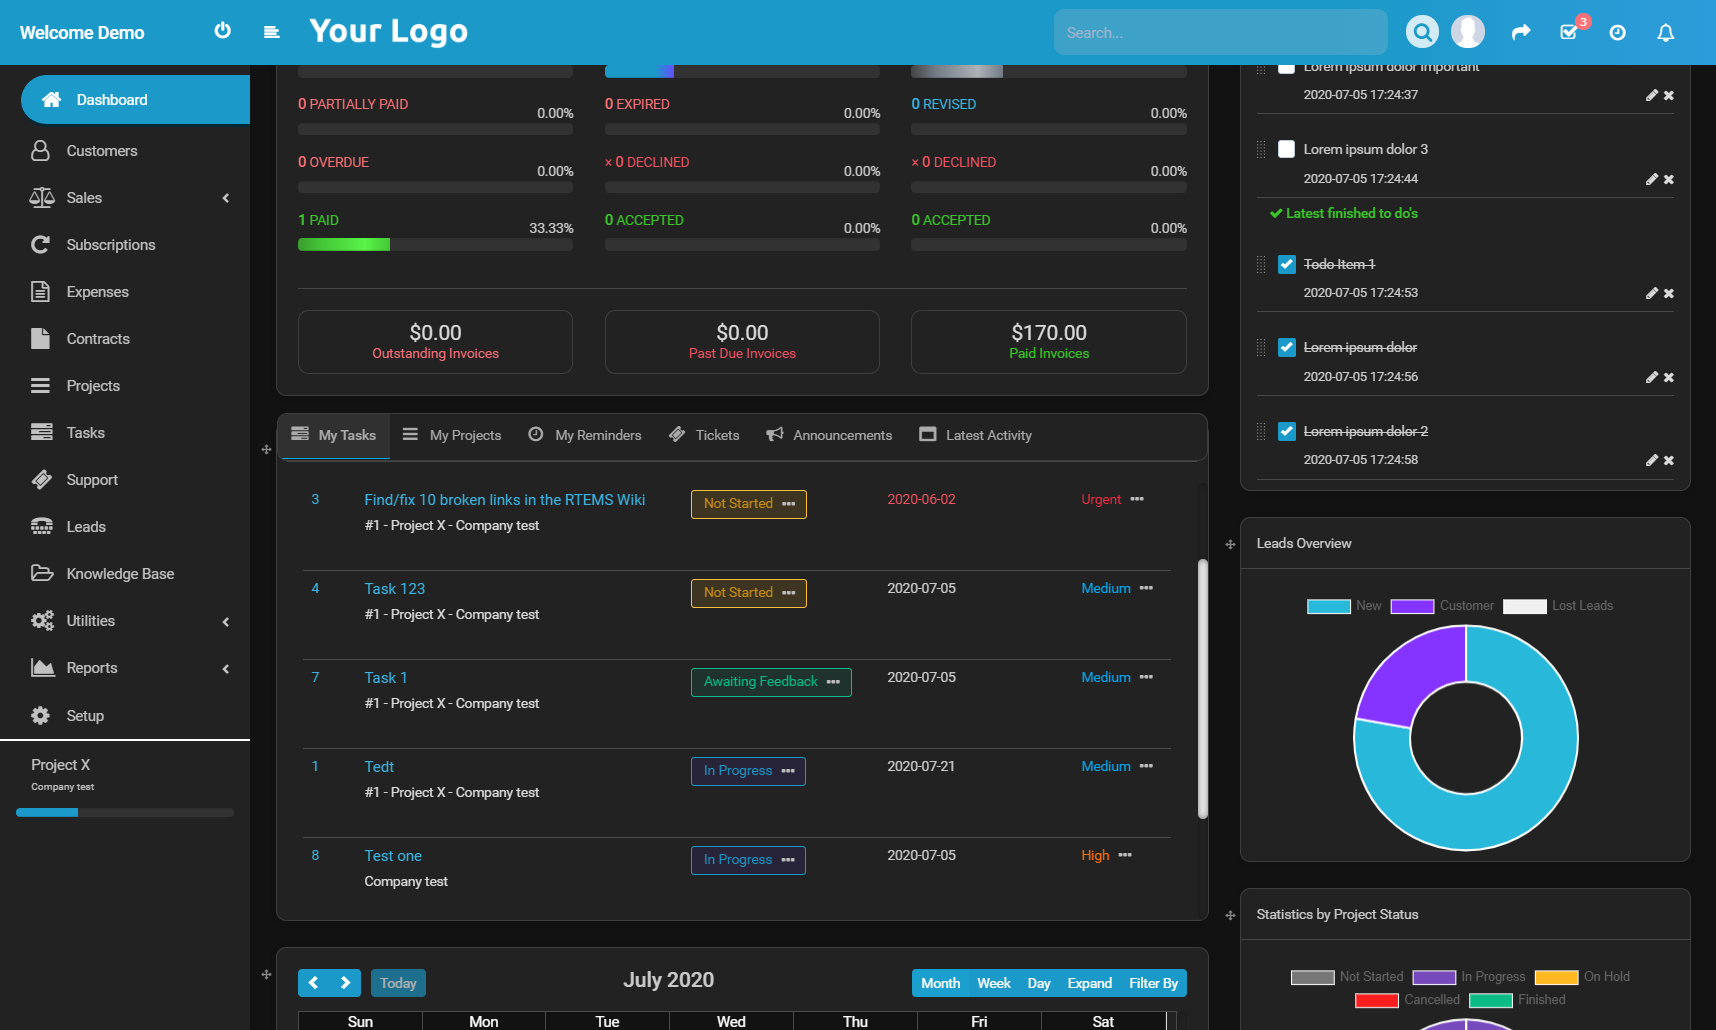 Ultimate Dark Theme for Perfex CRM